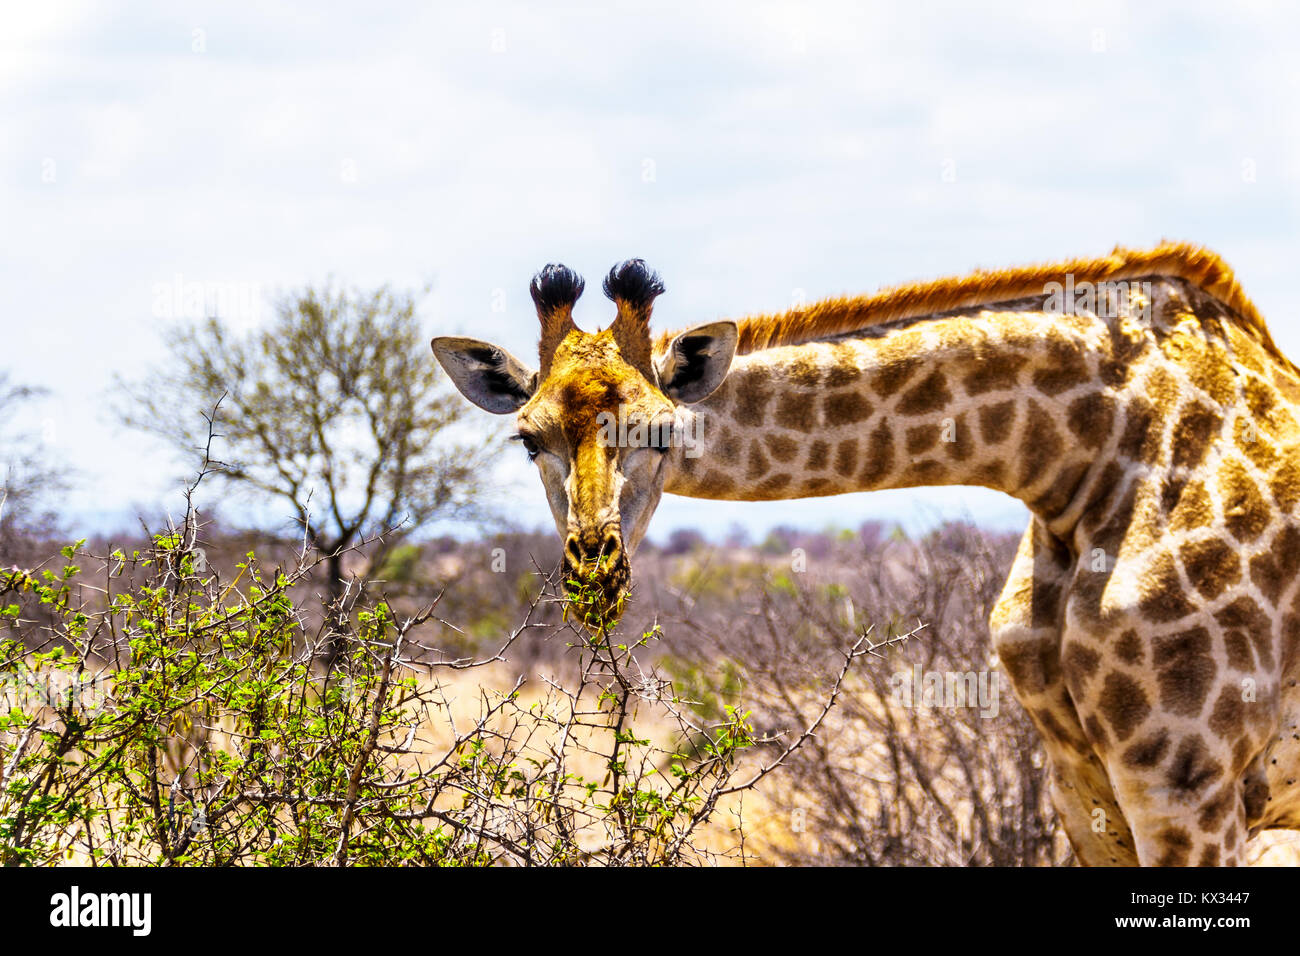 Close Up of a Giraffe looking at the camera in the savanna area of central Kruger Park in South Africa - Stock Image